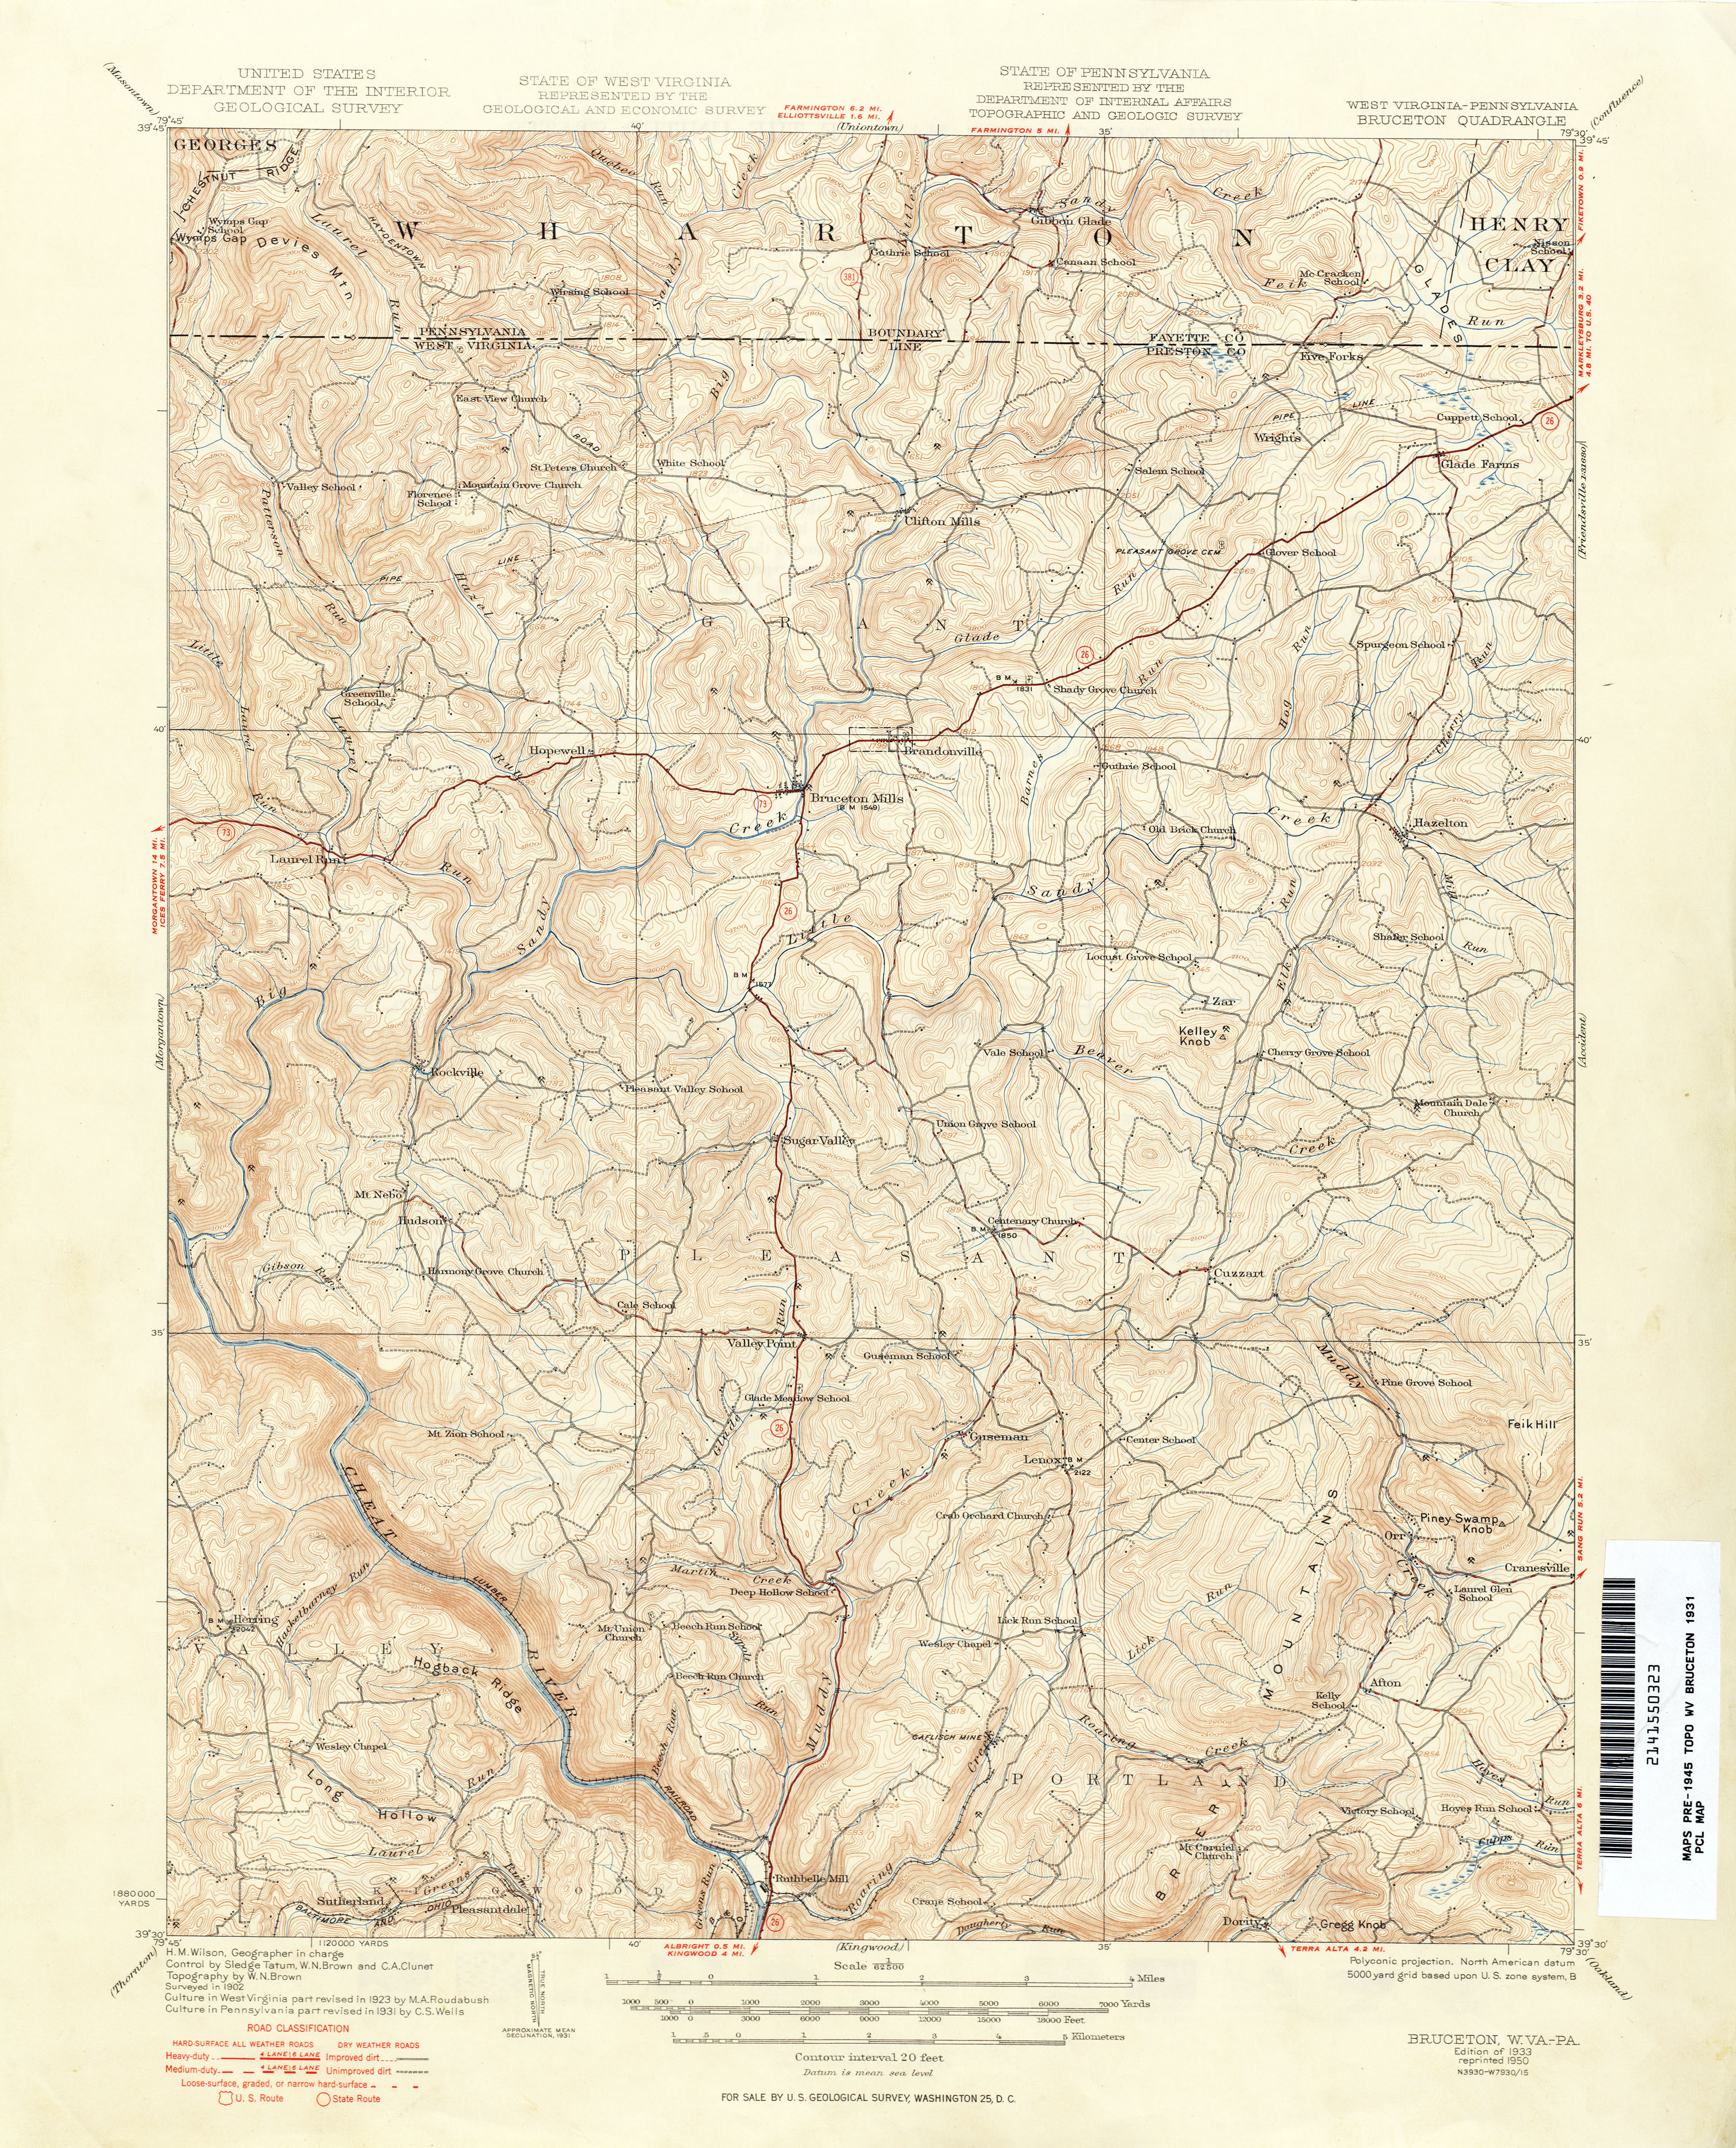 Topographic Map West Virginia.West Virginia Historical Topographic Maps Perry Castaneda Map